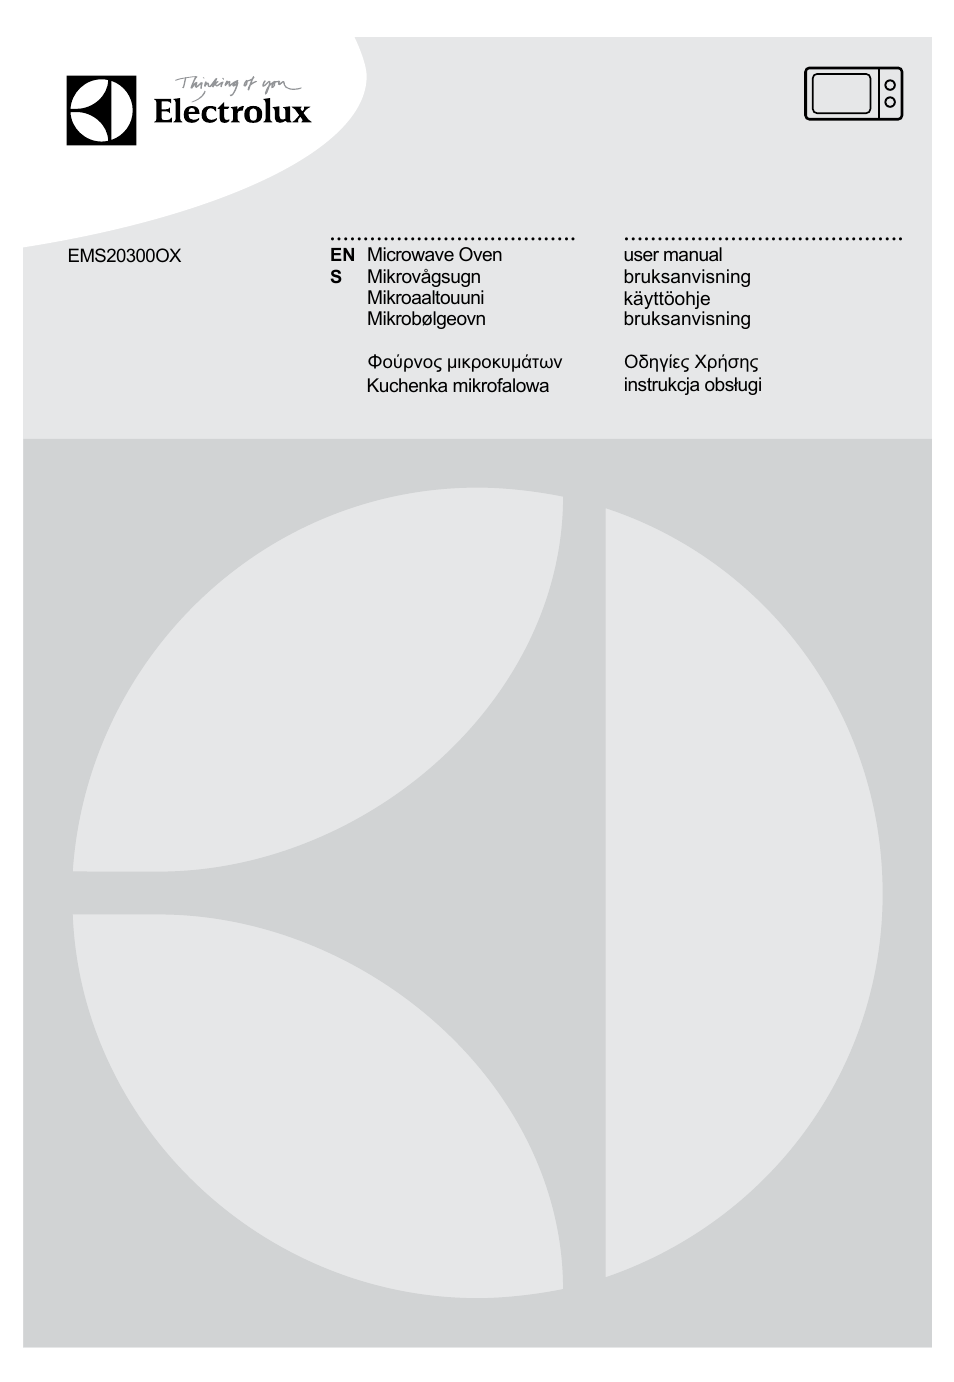 Electrolux Ems20300ox User Manual 88 Pages